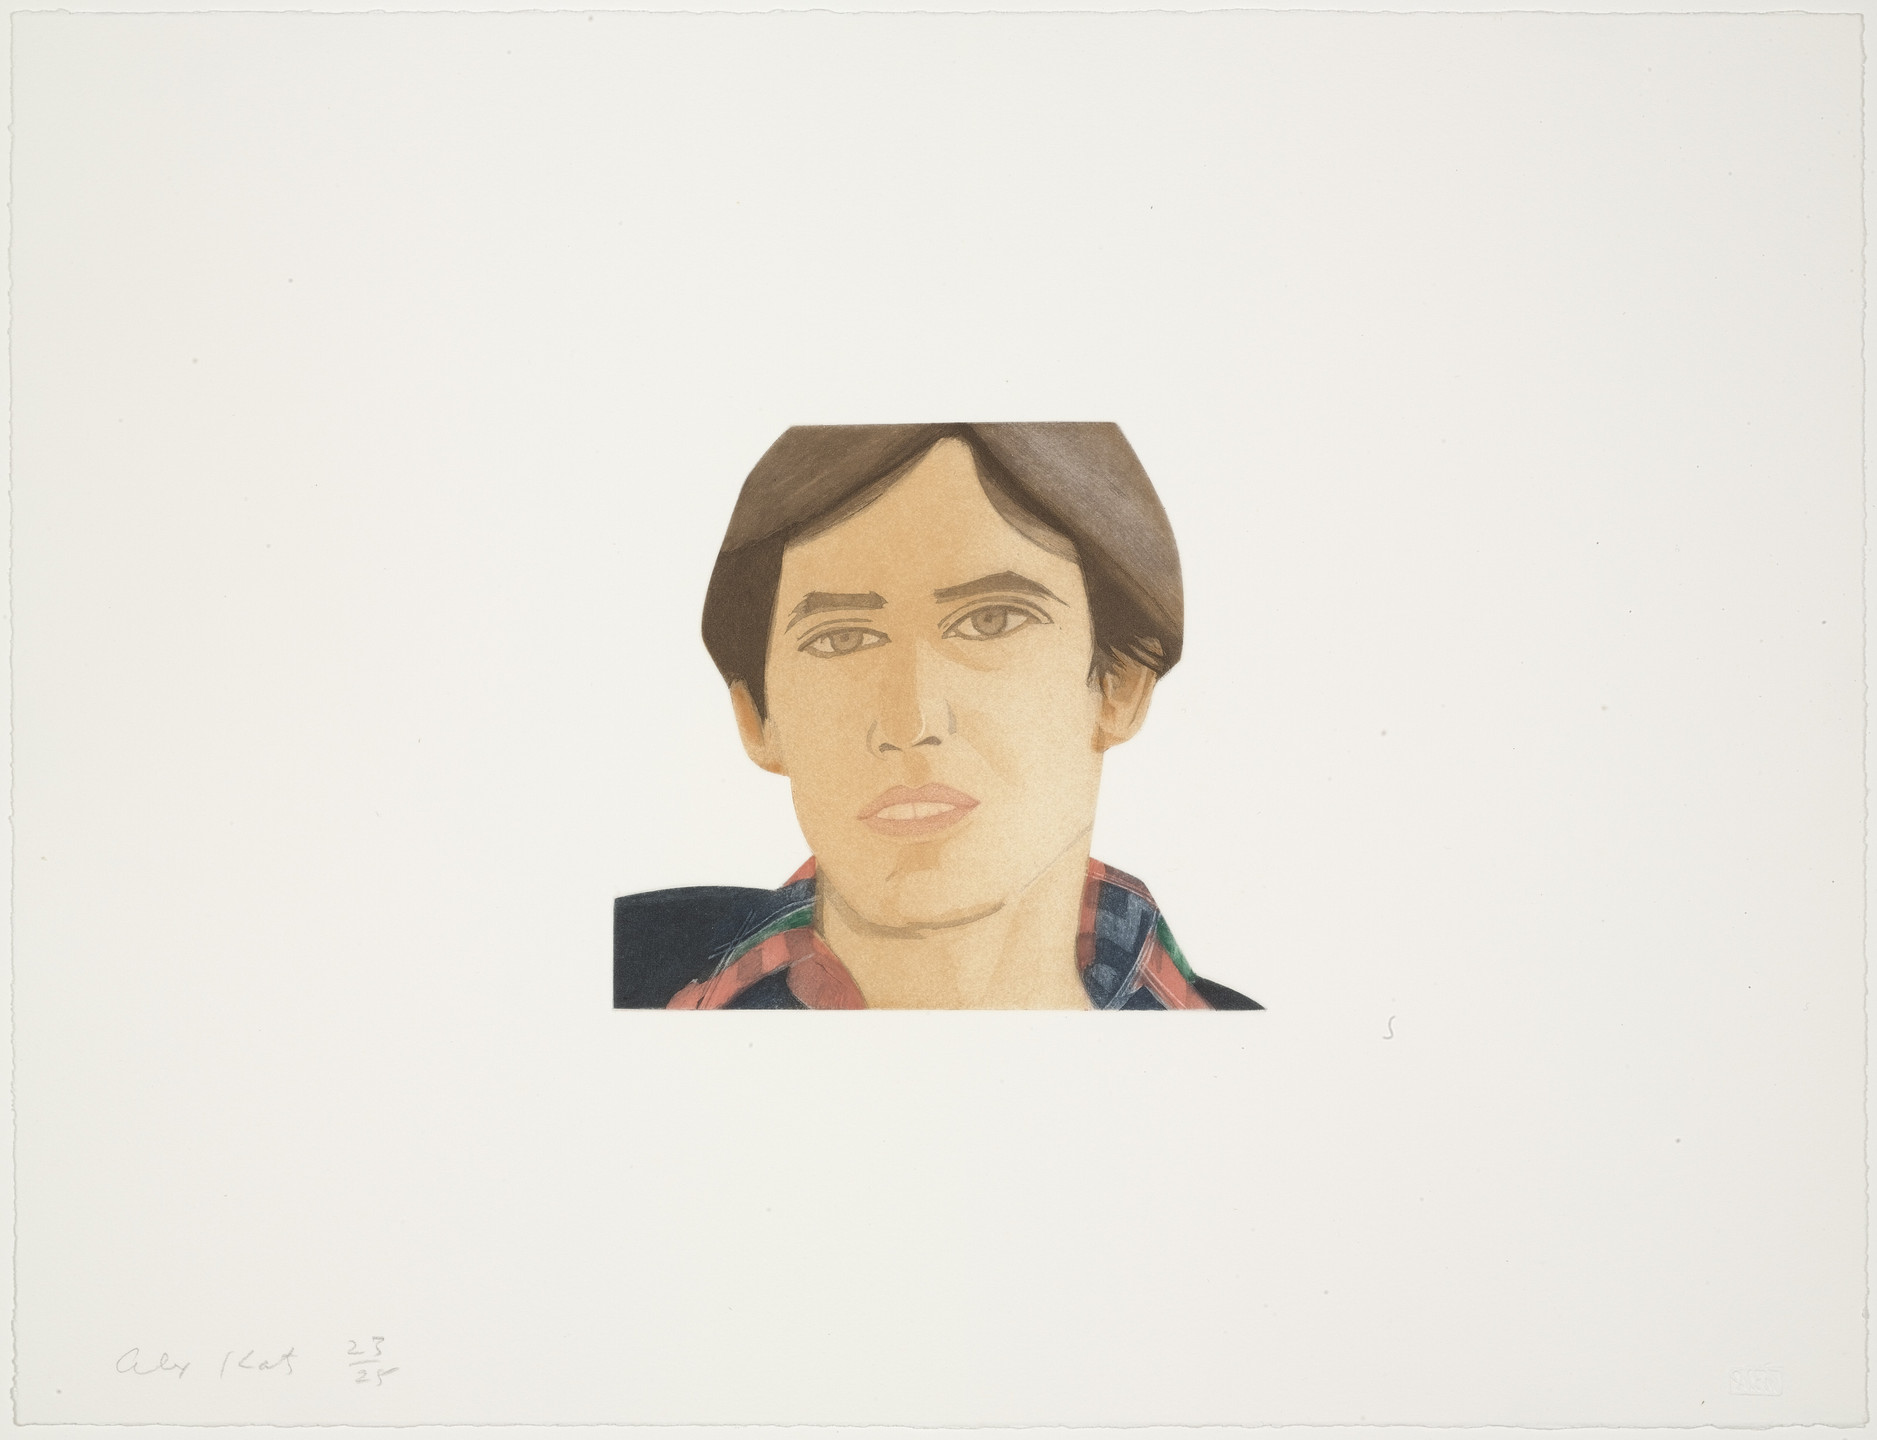 Alex Katz. Michael Lally from Face of the Poet. 1978